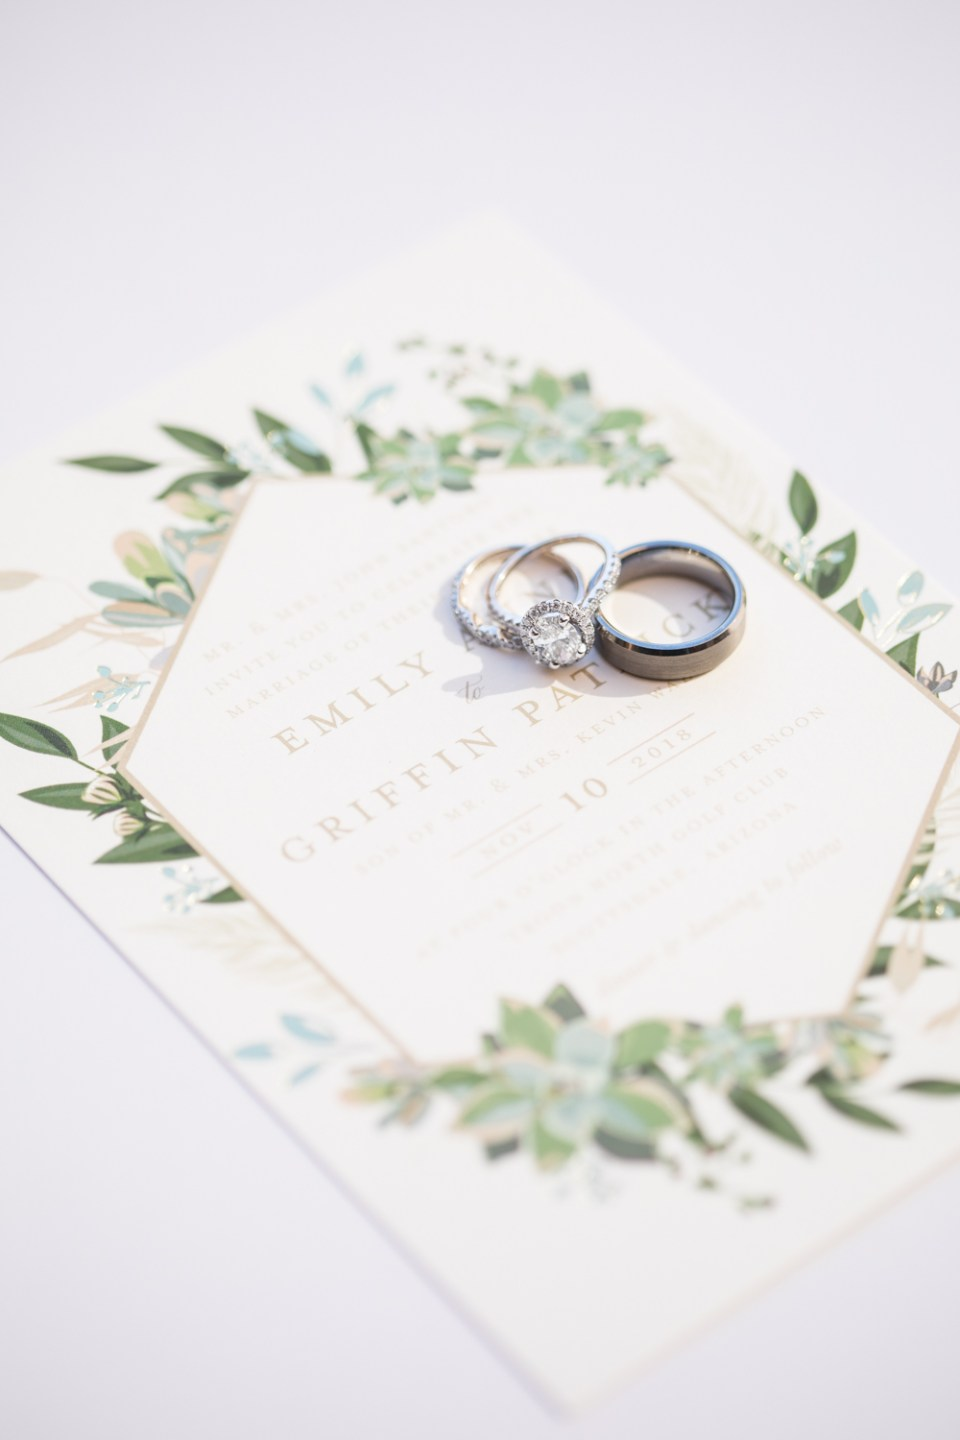 minted wedding invitation ring shot